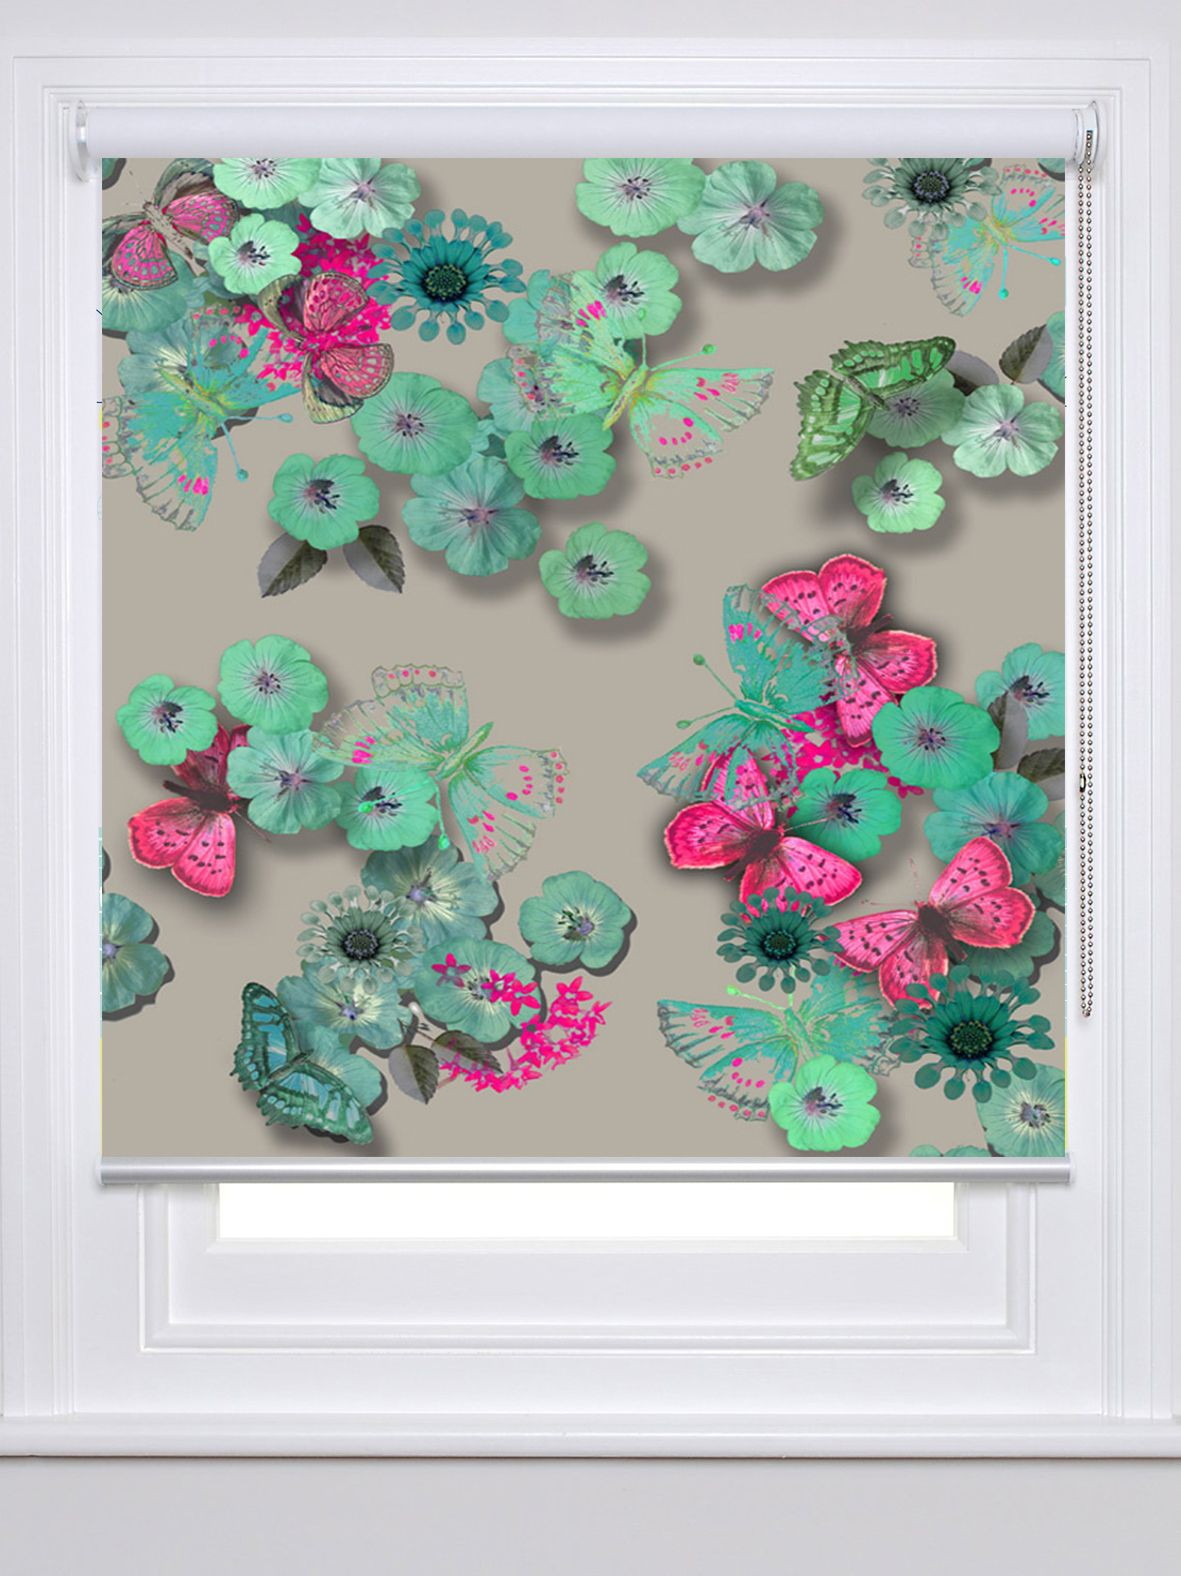 House window shade design  design by laura olivia available as window blinds exclusive to s